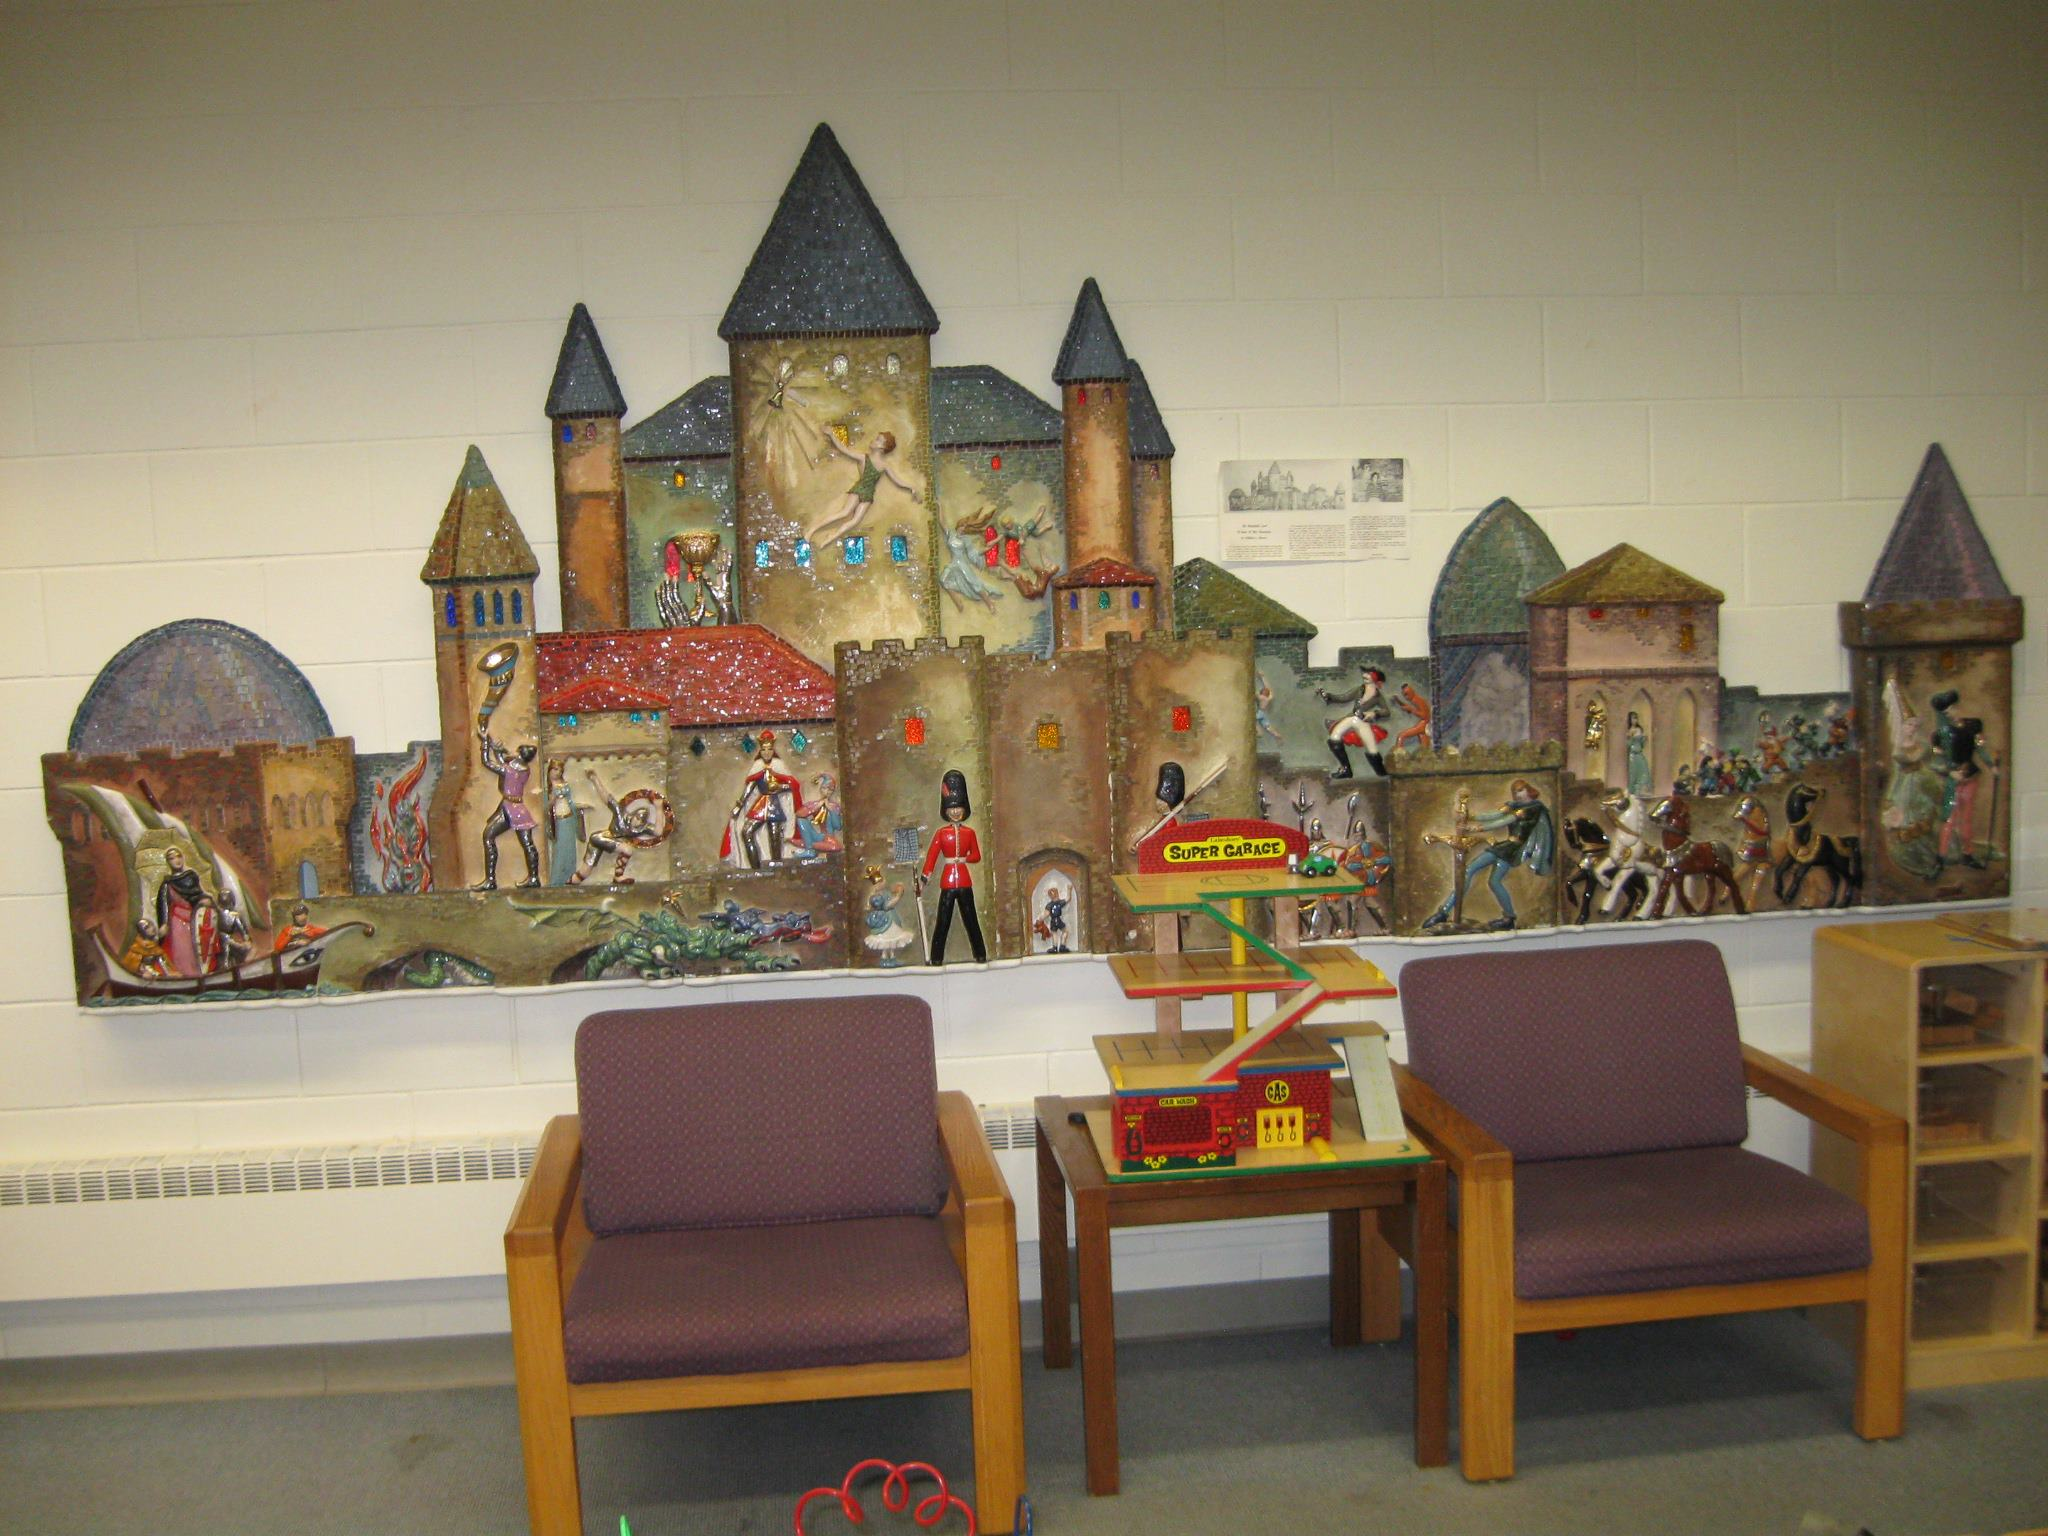 Storybook Castle, Josephine Mather Aull, ceramic mural.